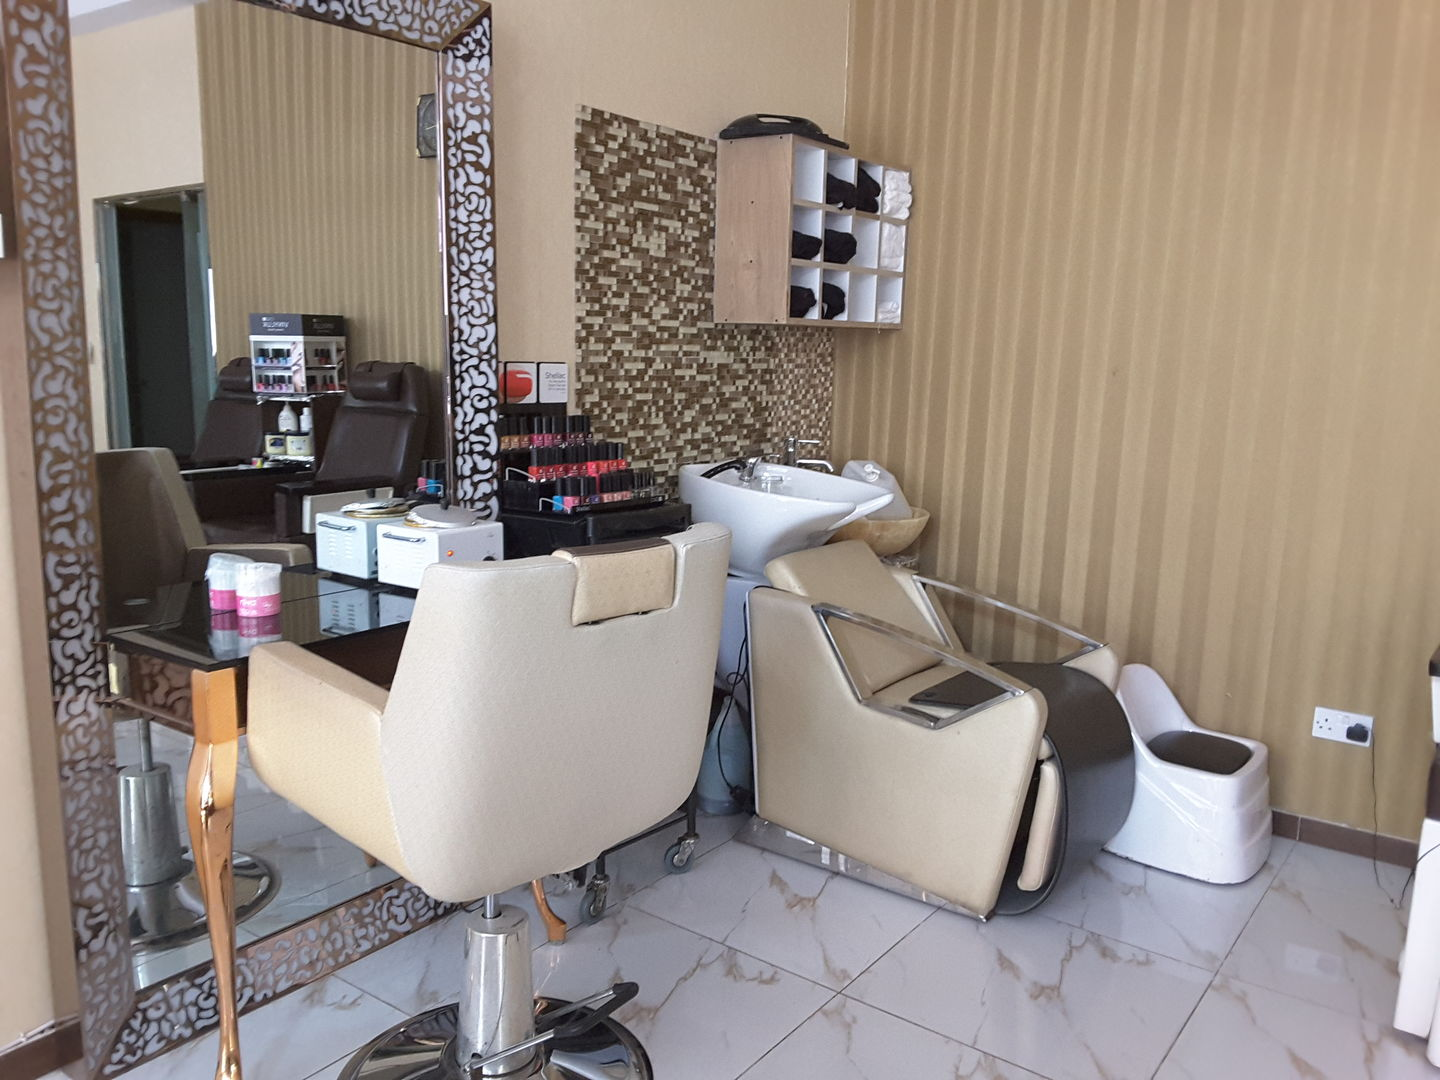 HiDubai-business-zain-al-omor-beauty-saloon-beauty-wellness-health-beauty-salons-hor-al-anz-east-dubai-2